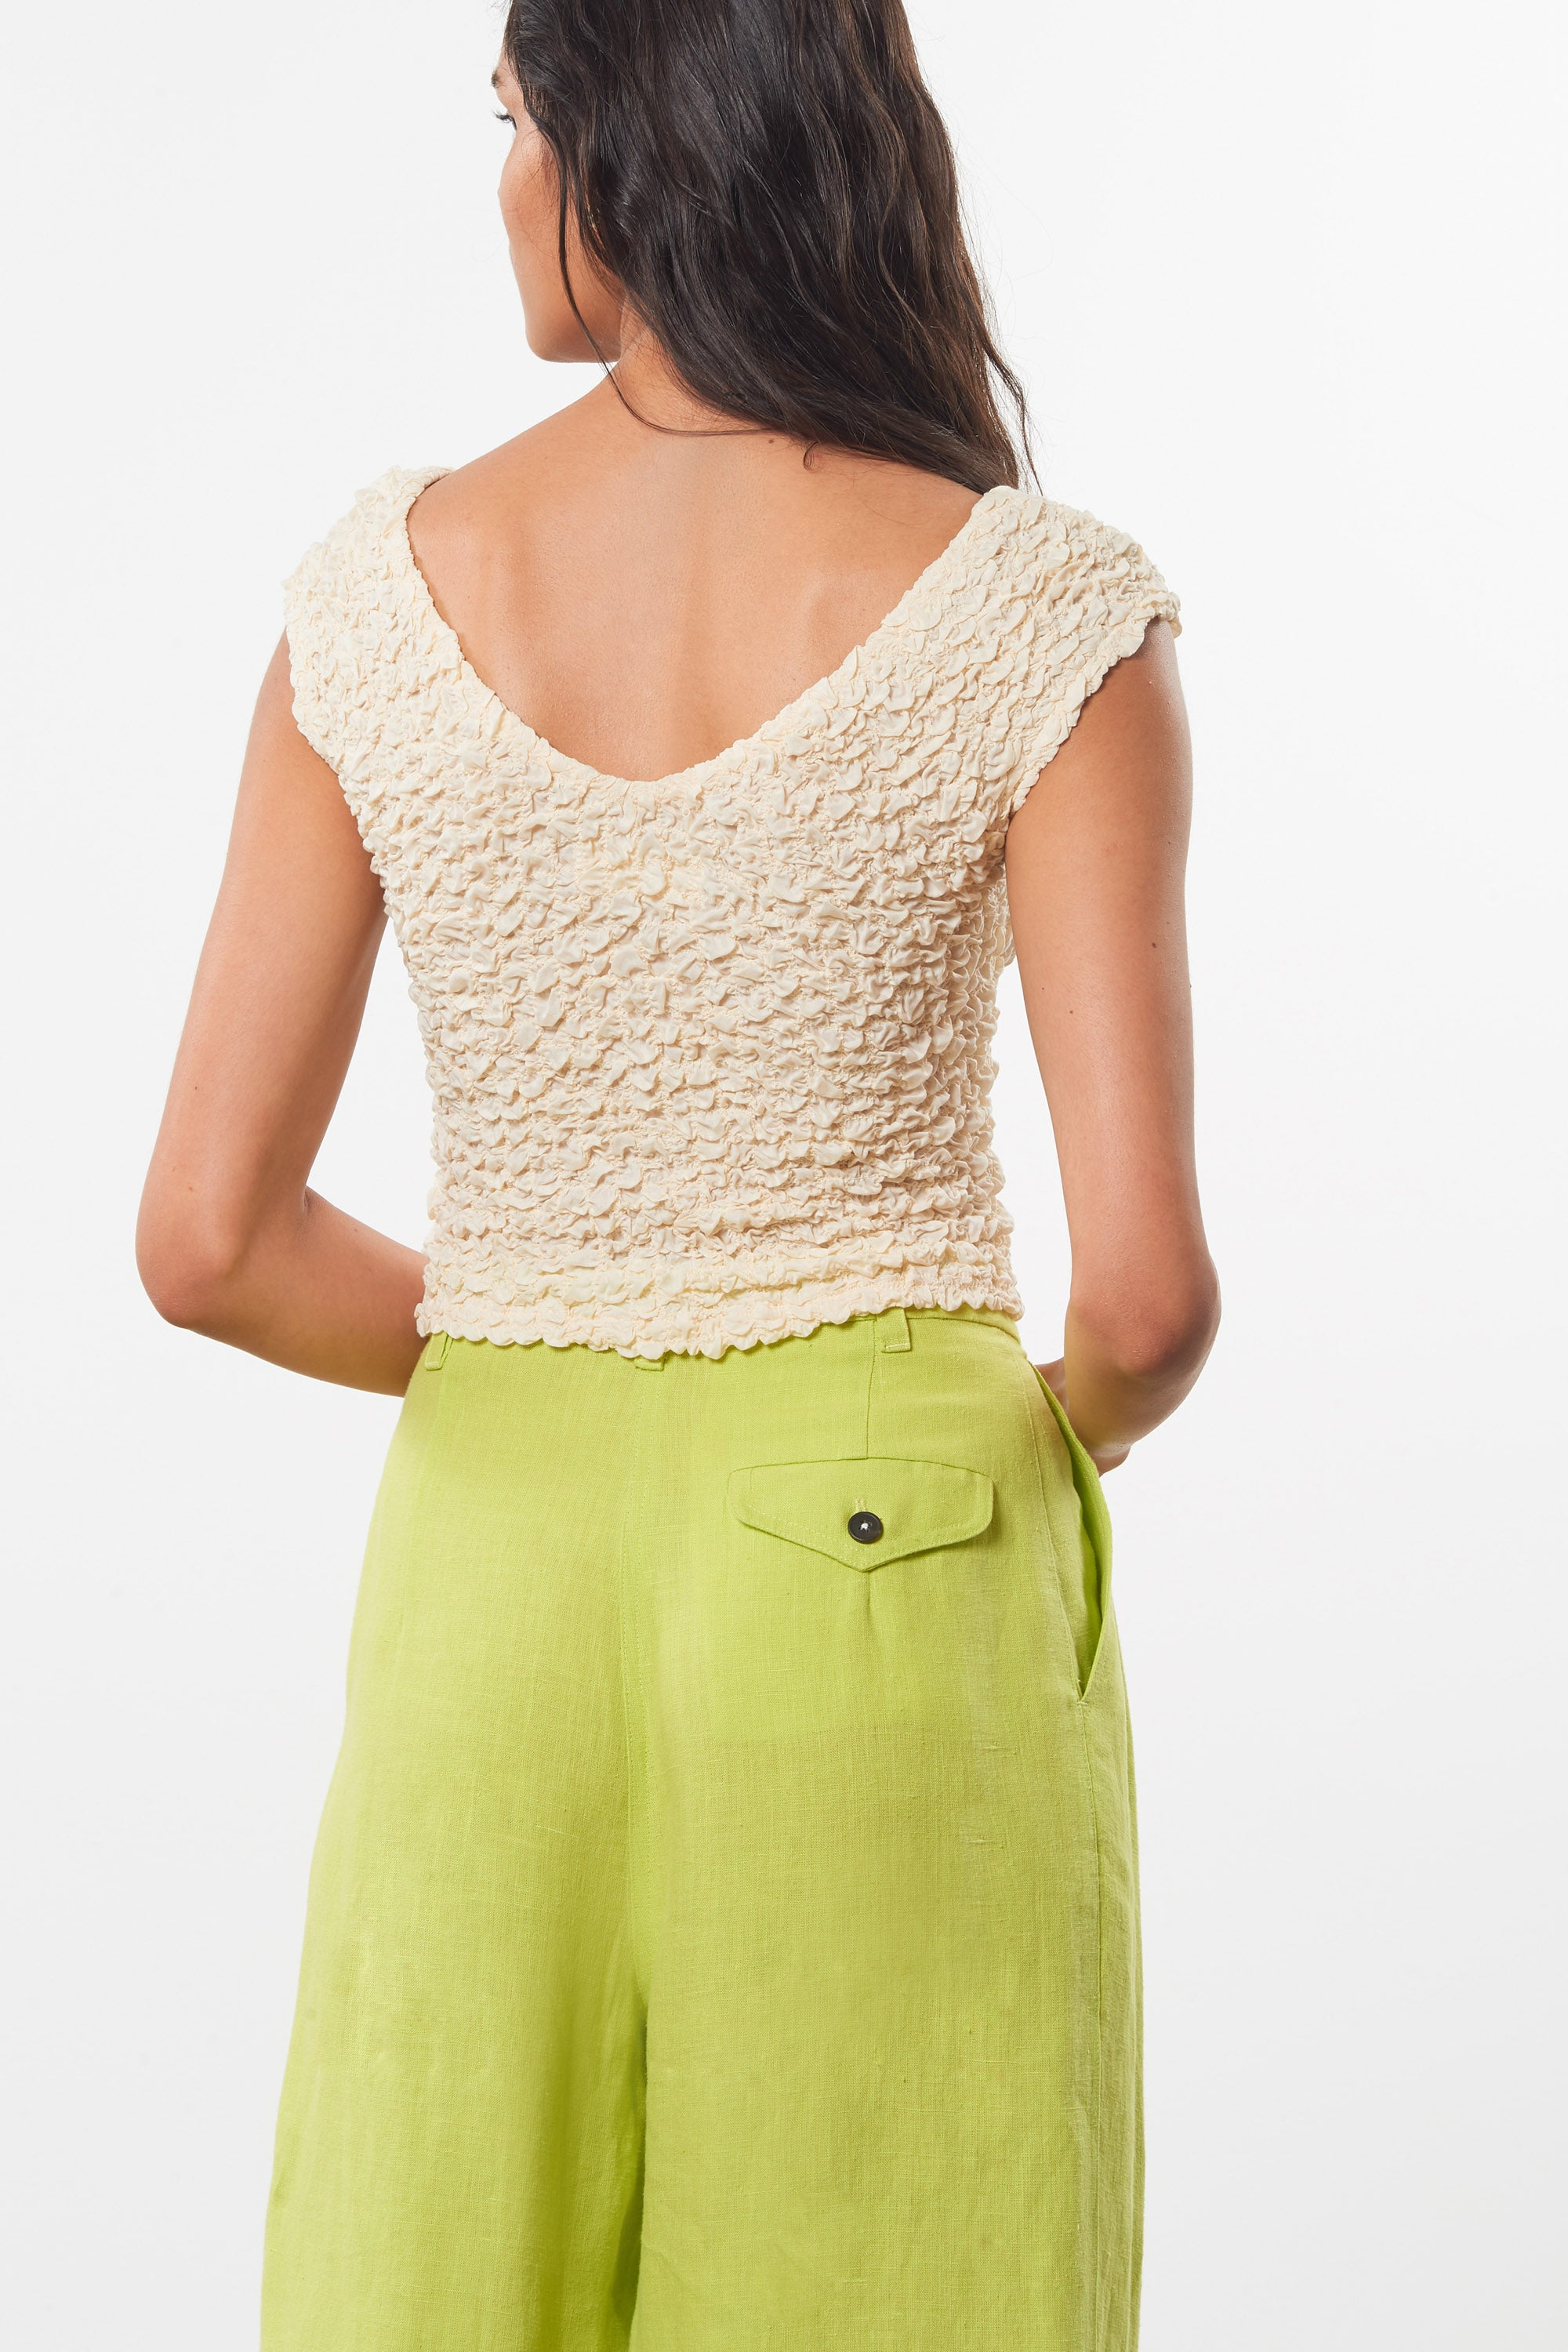 Mara Hoffman Green Eldora Pant in hemp (back pocket detail)